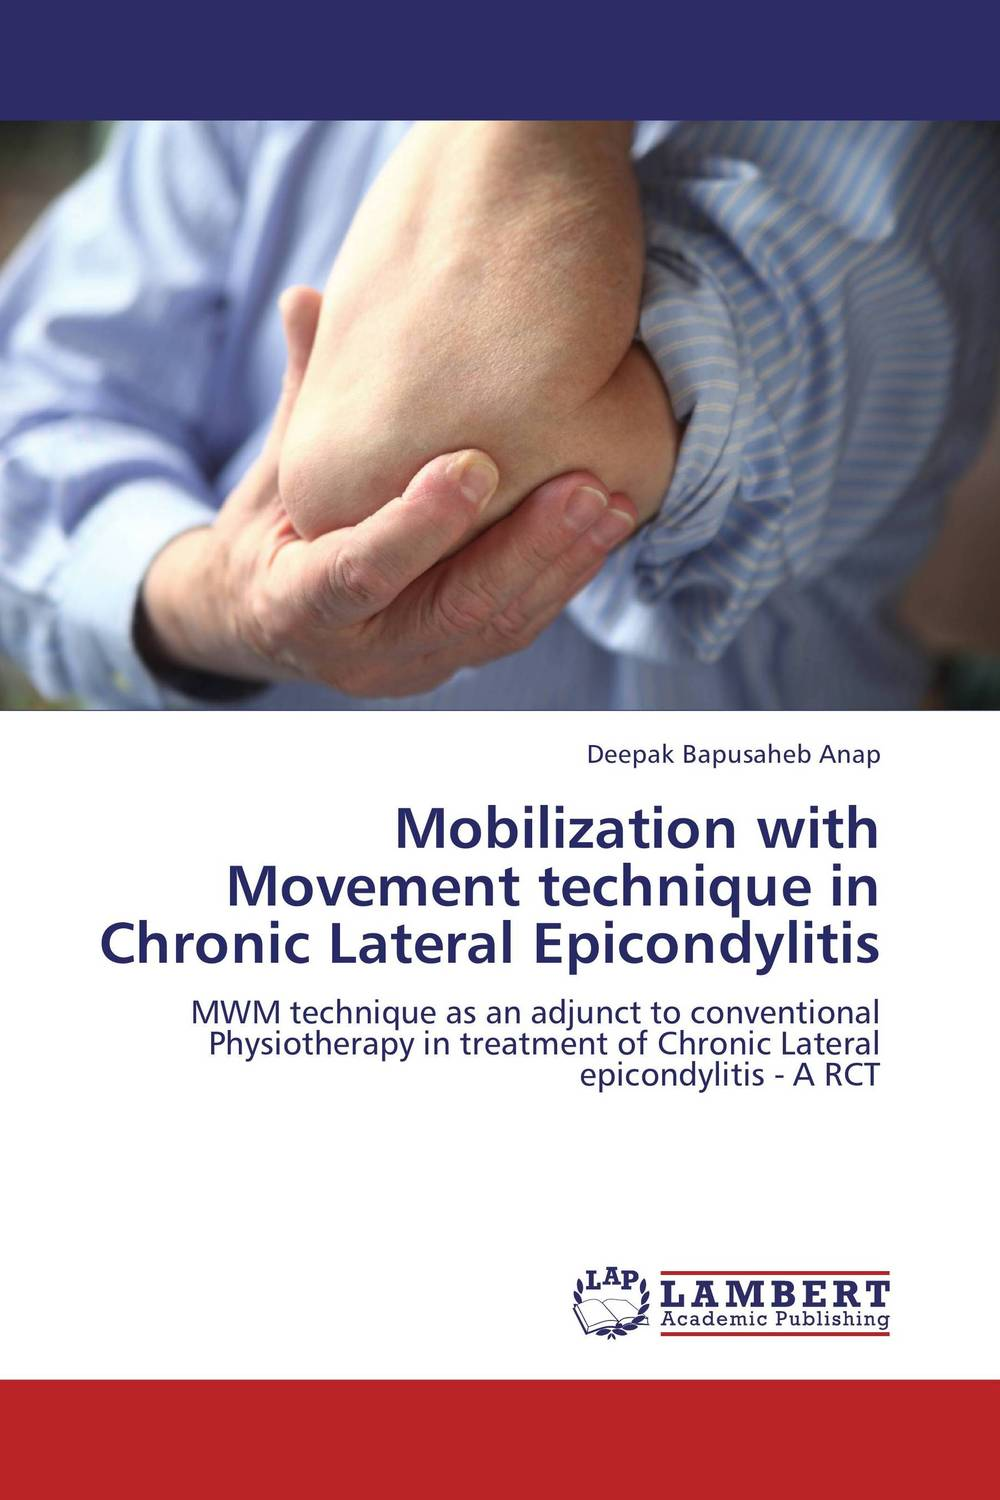 Mobilization with Movement technique in Chronic Lateral Epicondylitis a novel separation technique using hydrotropes